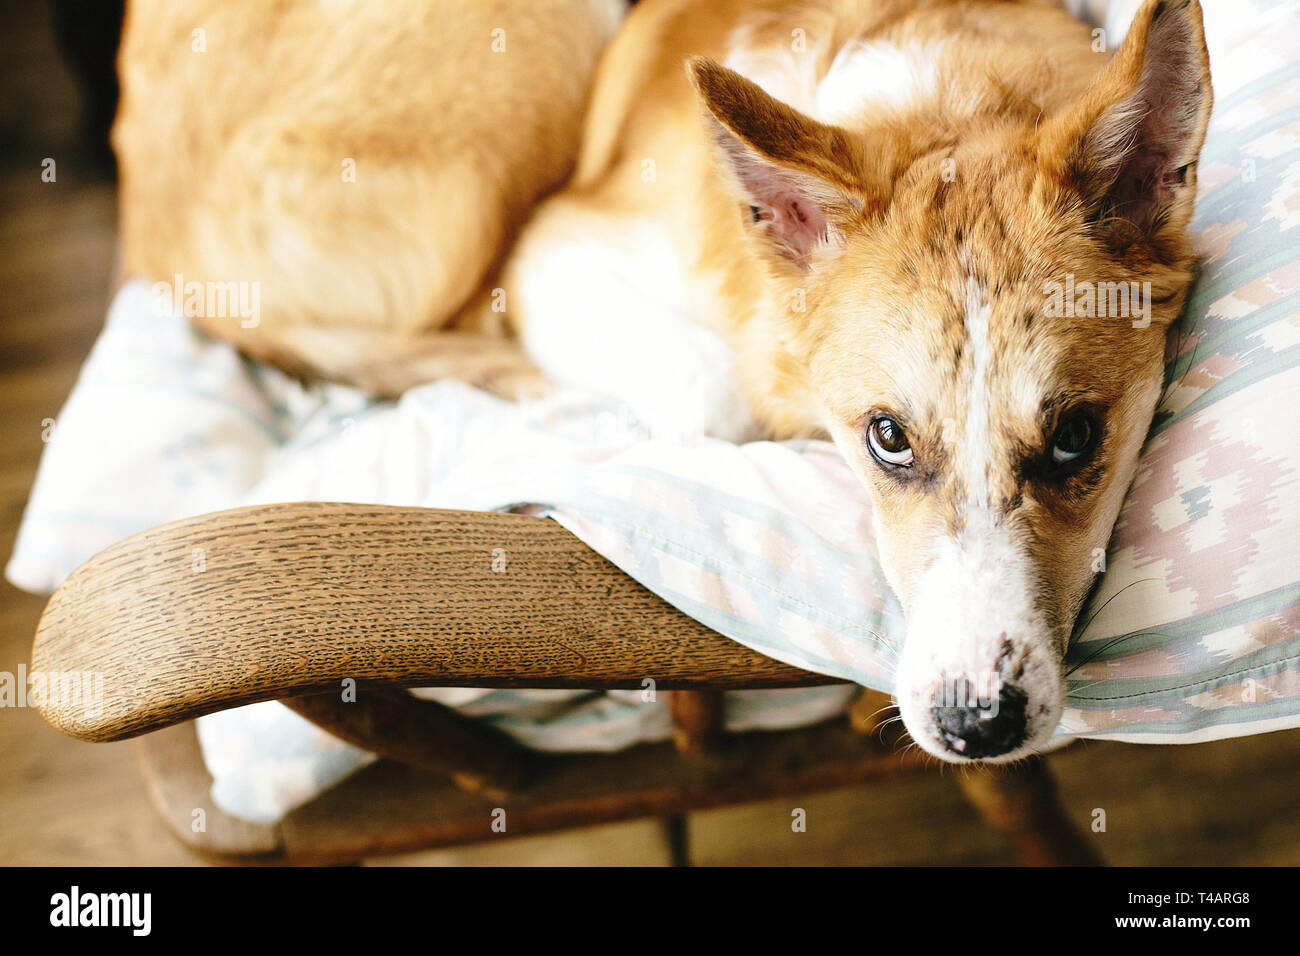 Cute golden dog resting in wooden chair at home. Doggy sleeping on cozy blanket in chair, funny moment. Comfortable place. Adoption concept - Stock Image